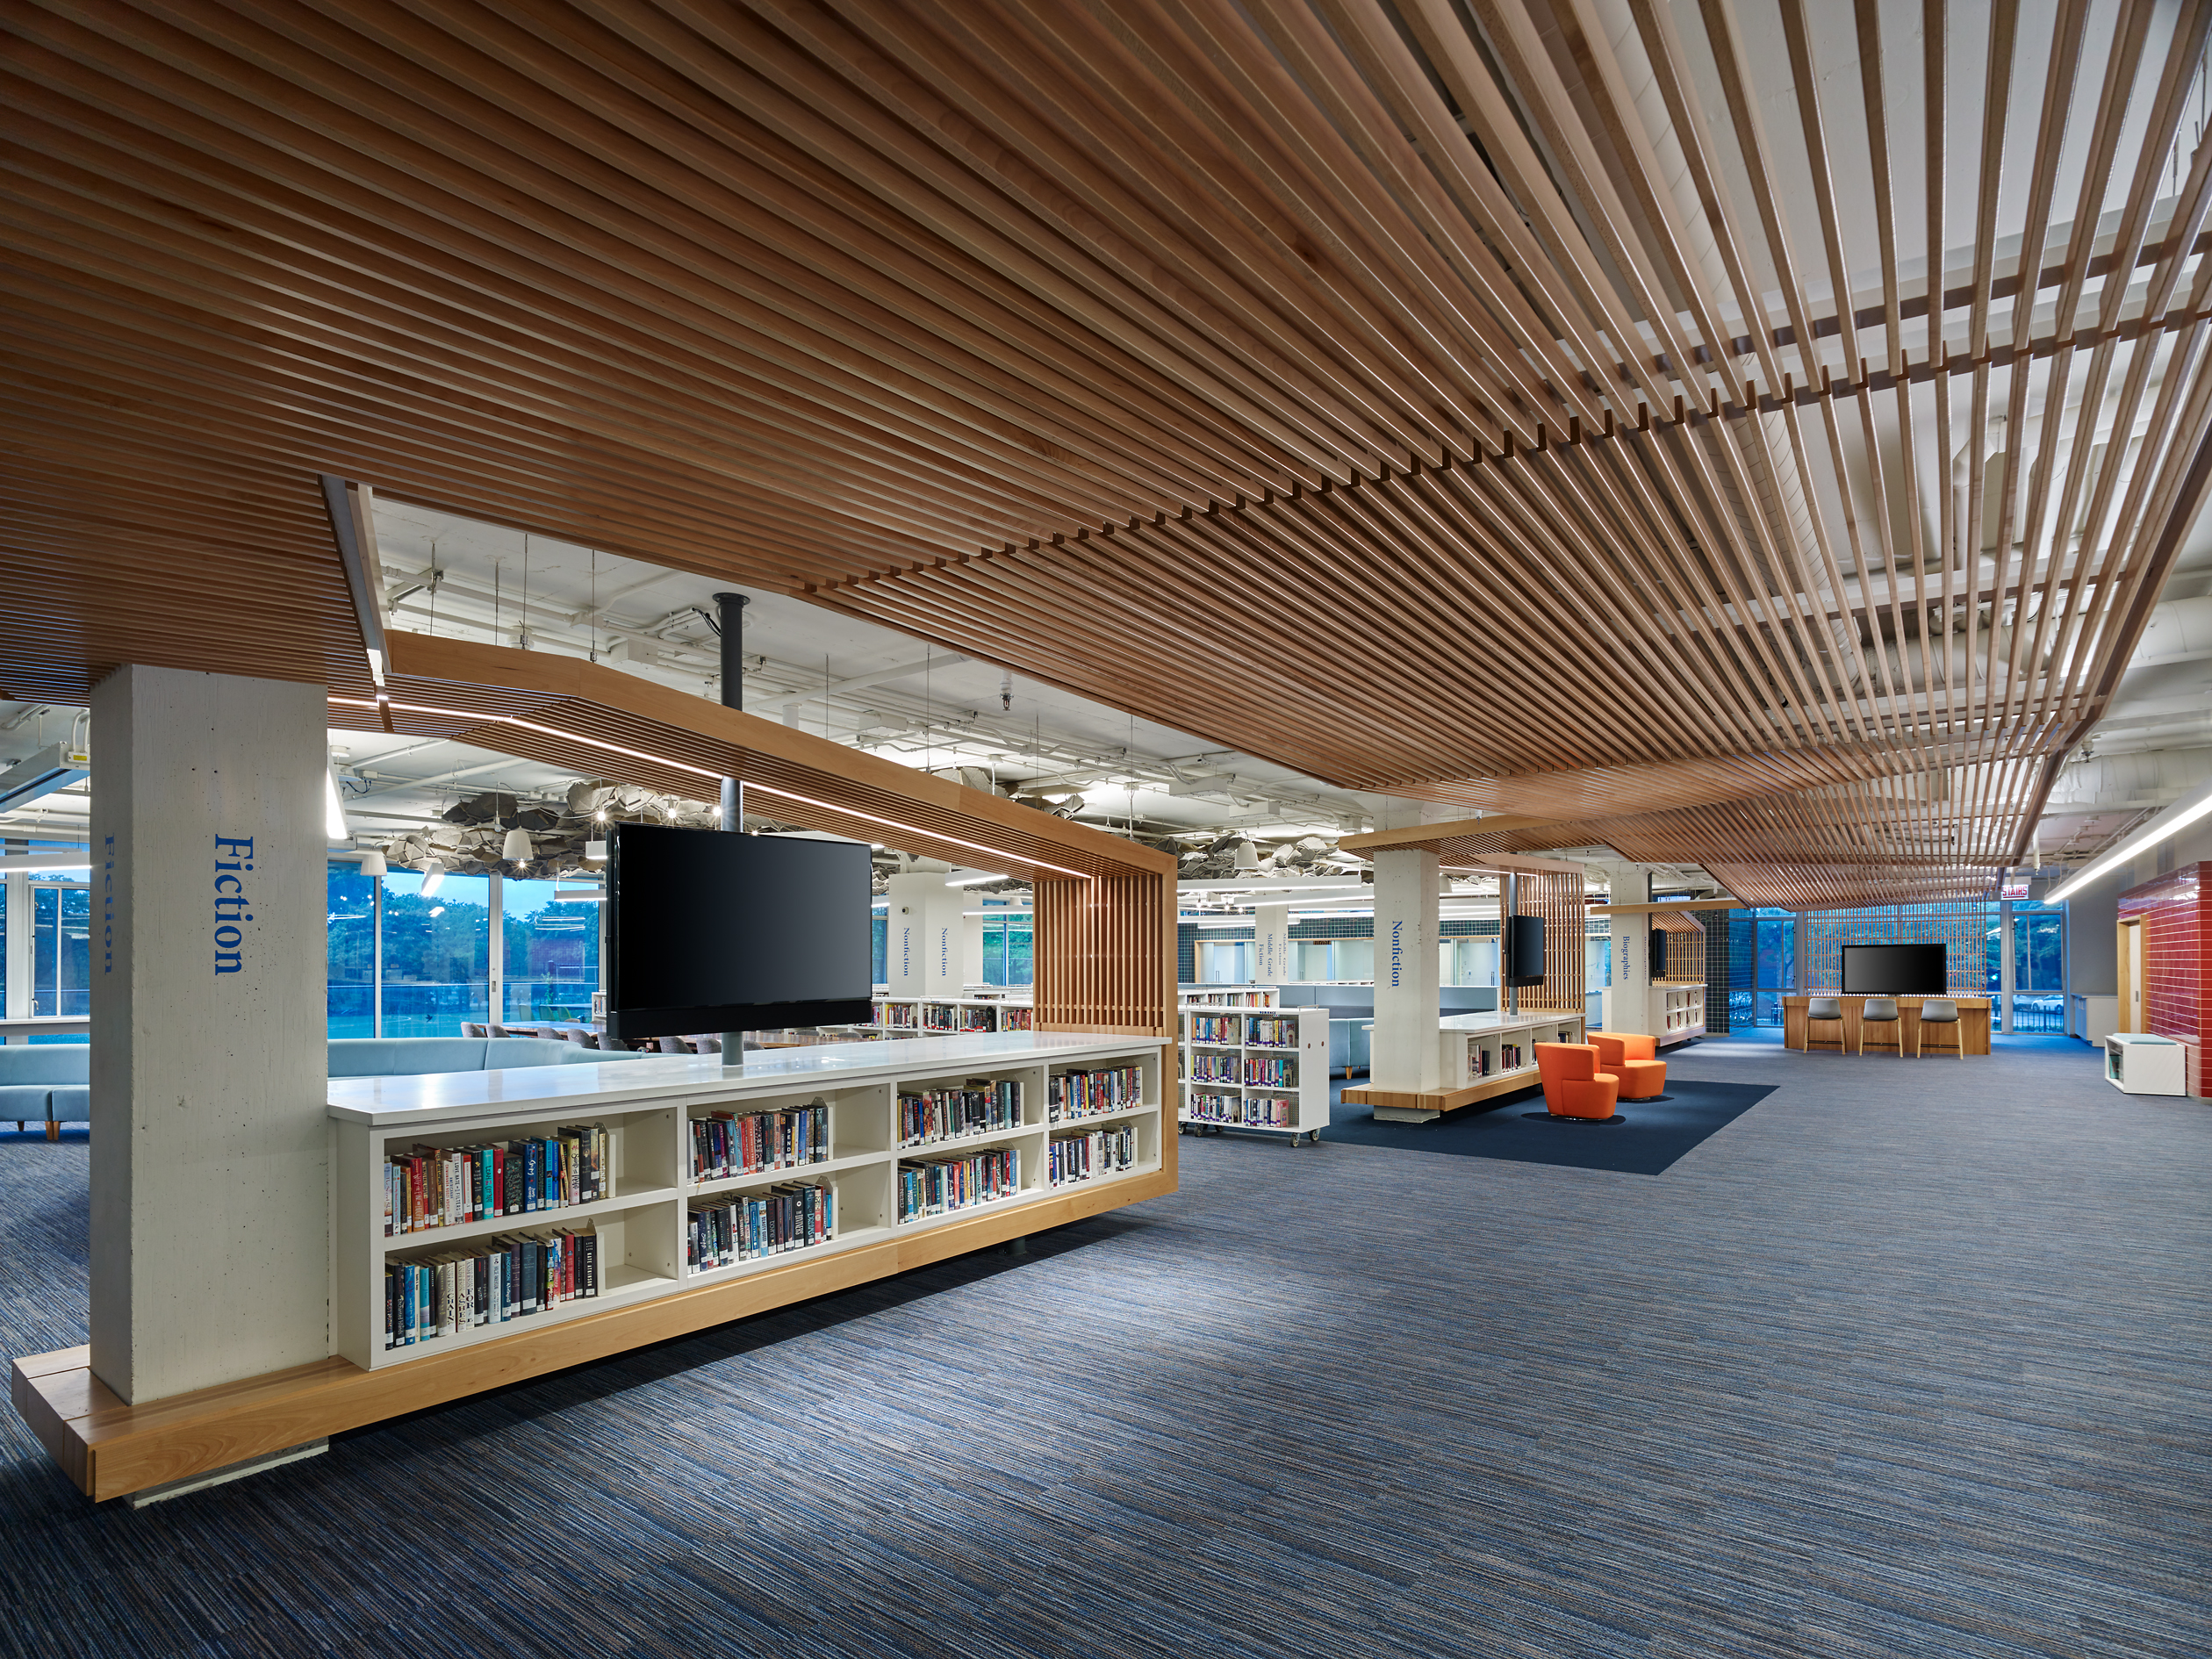 Undulating Ceiling